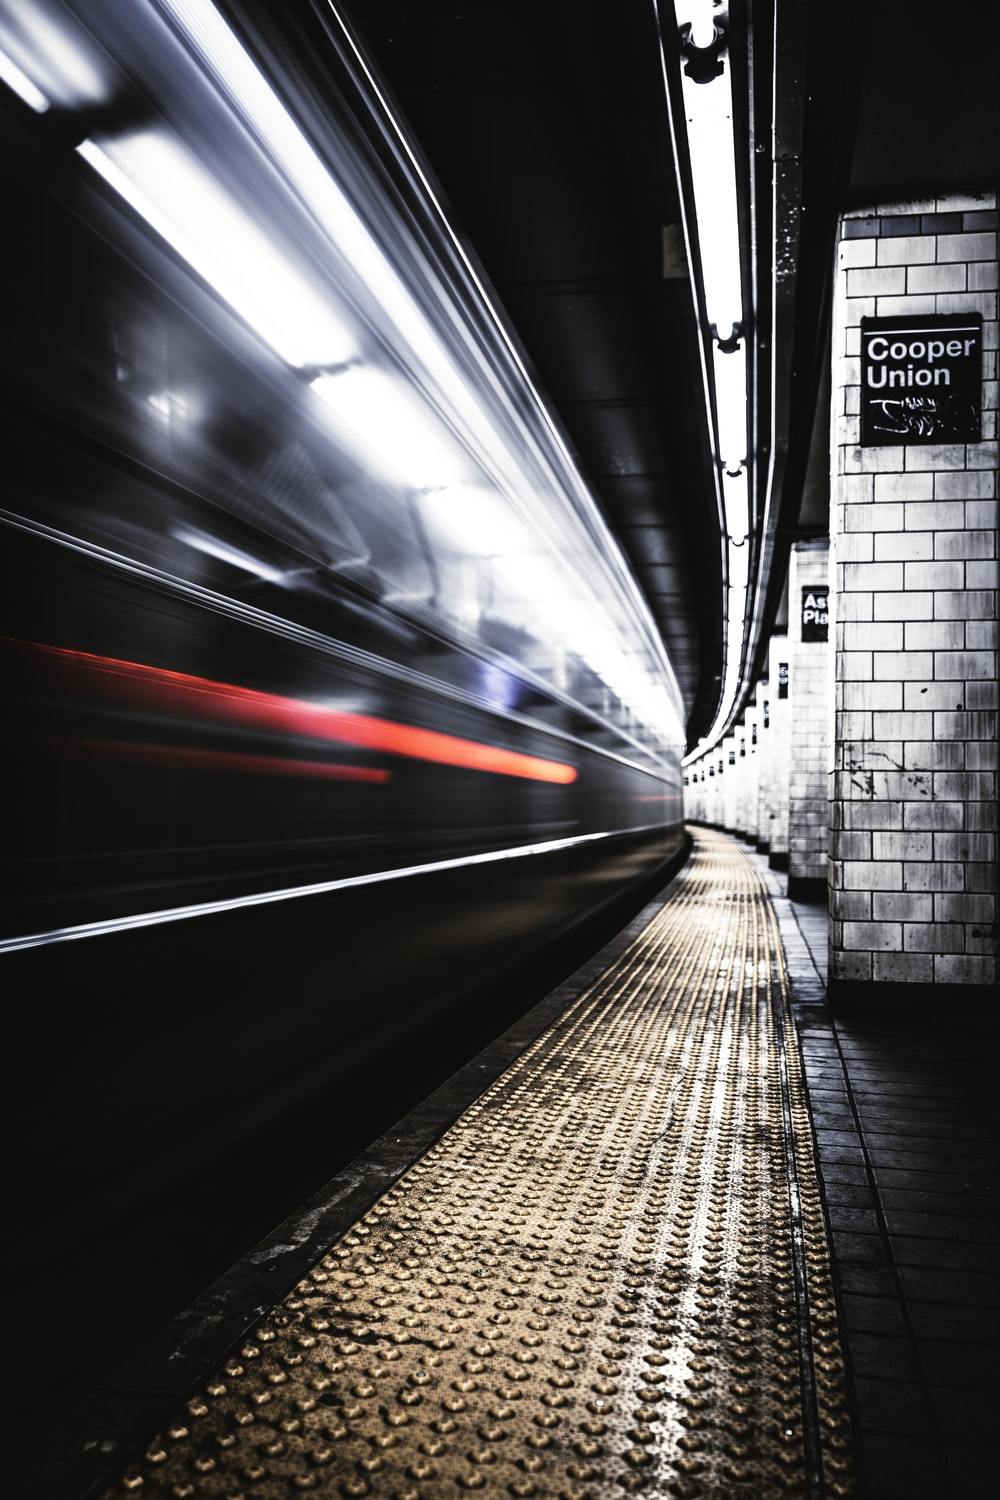 time lapse photography of train in tunnel